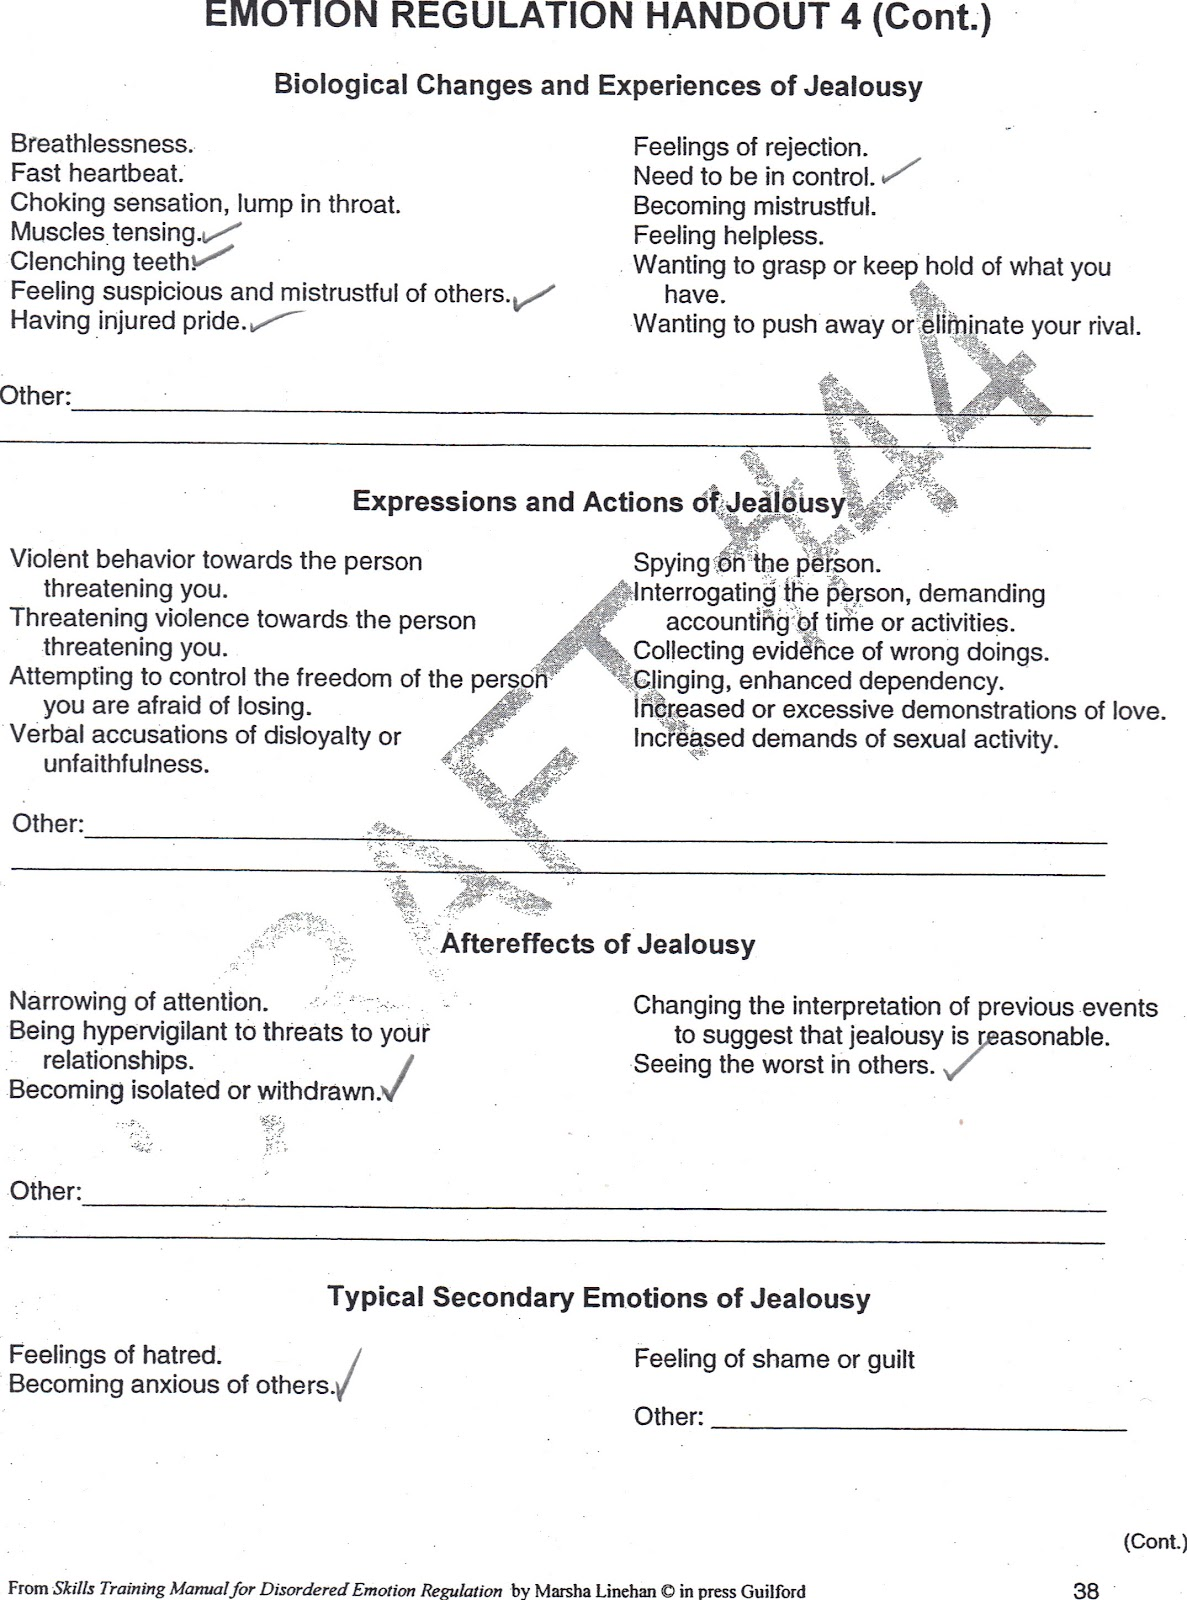 worksheet Emotions Worksheet emotional regulation worksheets abitlikethis disorder blog jealousy emotion handout 4 dbt